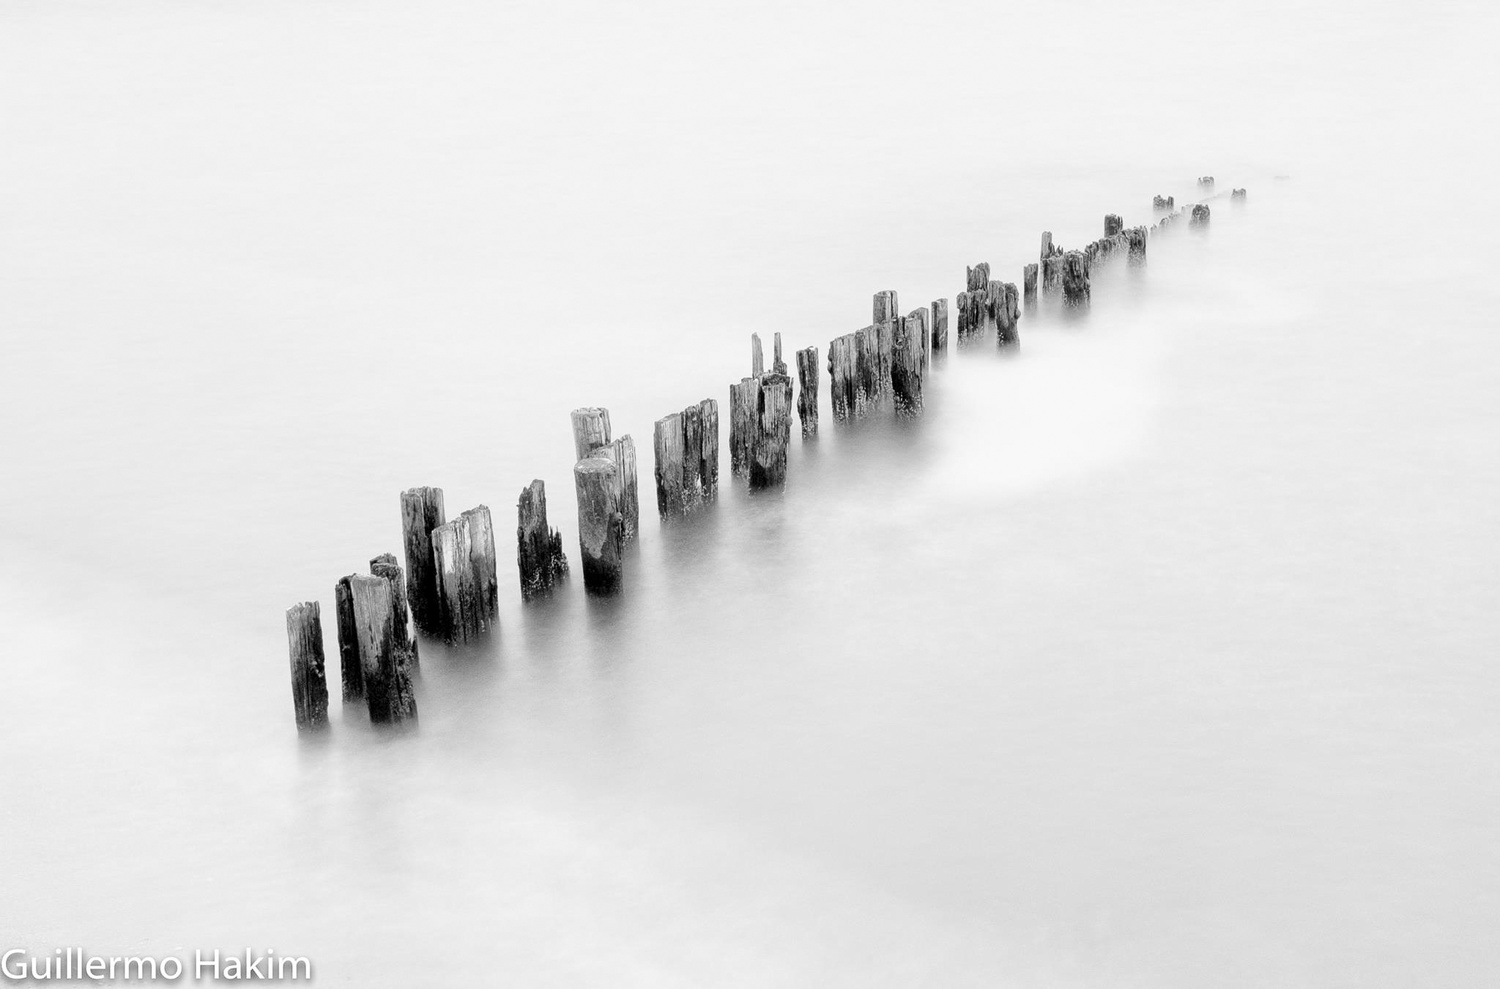 Remains of the pylons by Guillermo Hakim